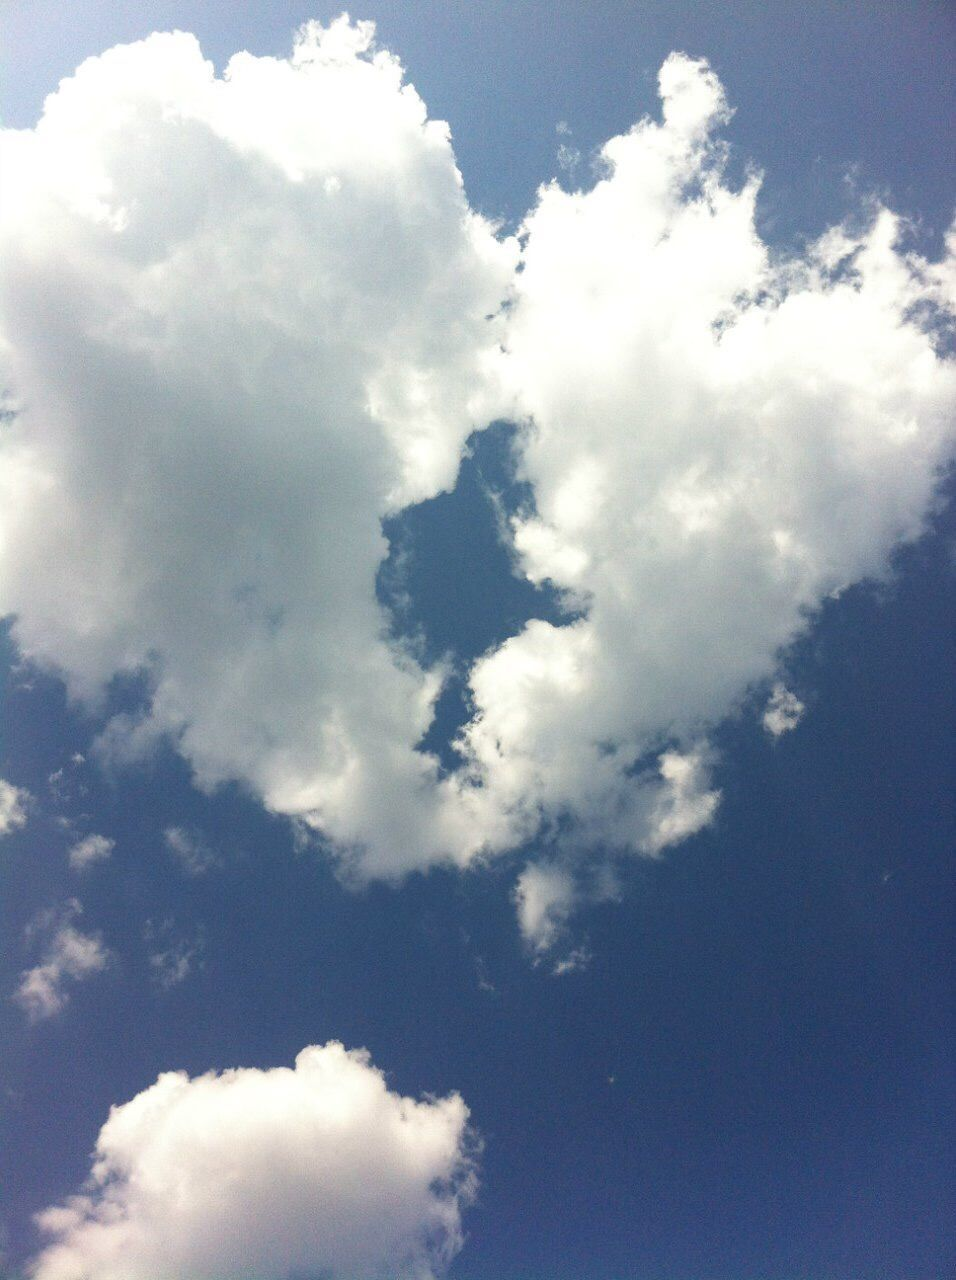 cloud - sky, sky, low angle view, beauty in nature, tranquility, nature, no people, scenics - nature, day, outdoors, backgrounds, blue, white color, full frame, tranquil scene, idyllic, sunlight, cloudscape, heaven, softness, meteorology, high, height